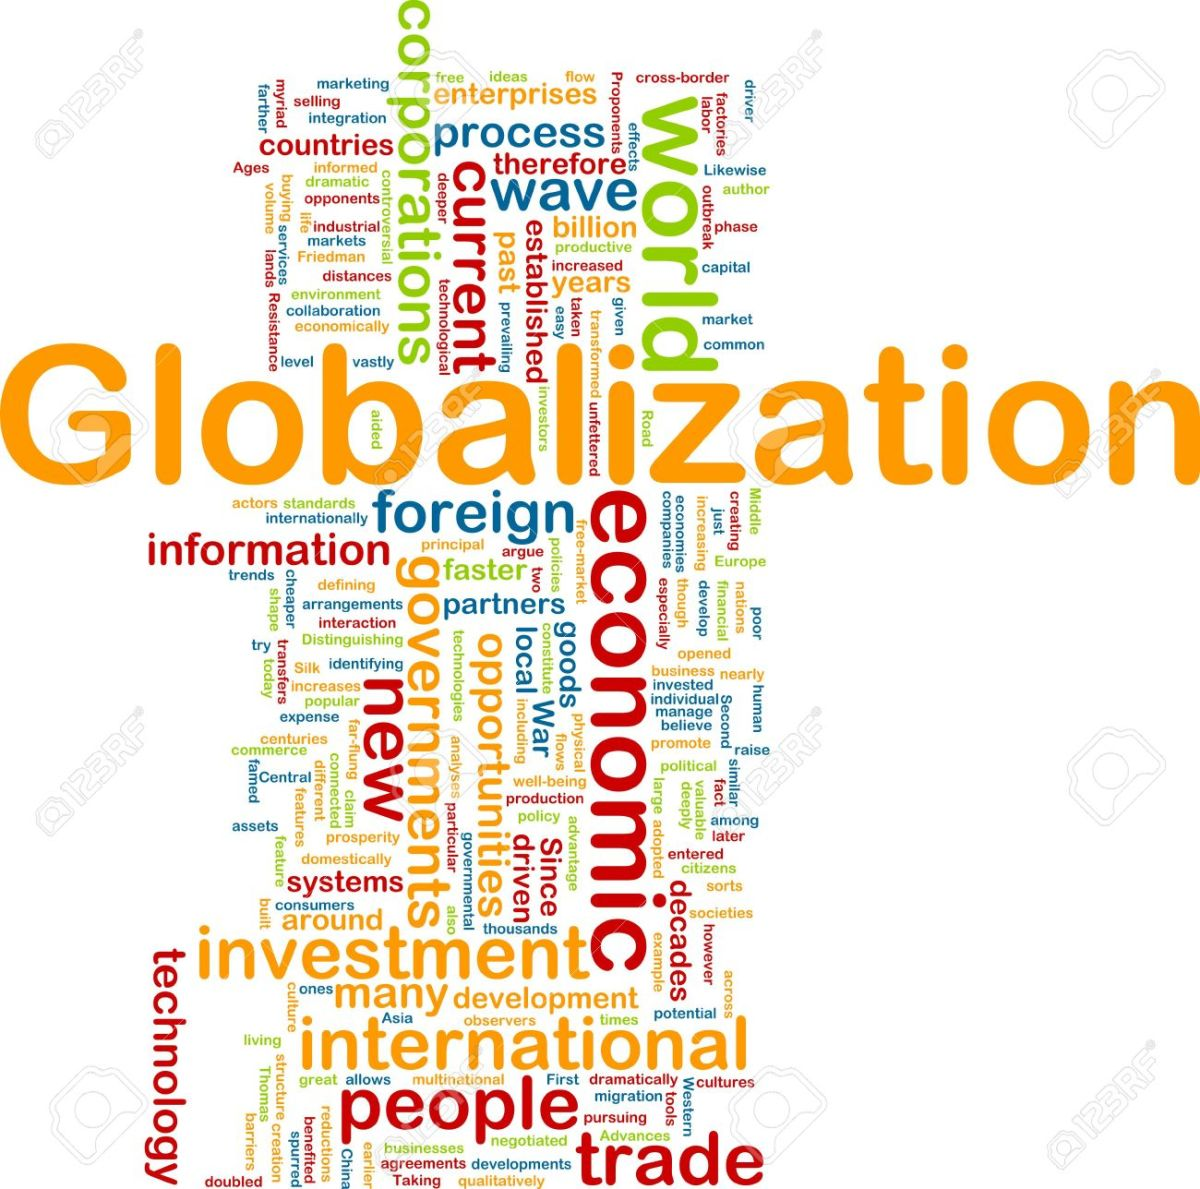 globalisation-definition-characteristics-and-factors-responsible-for-its-origin